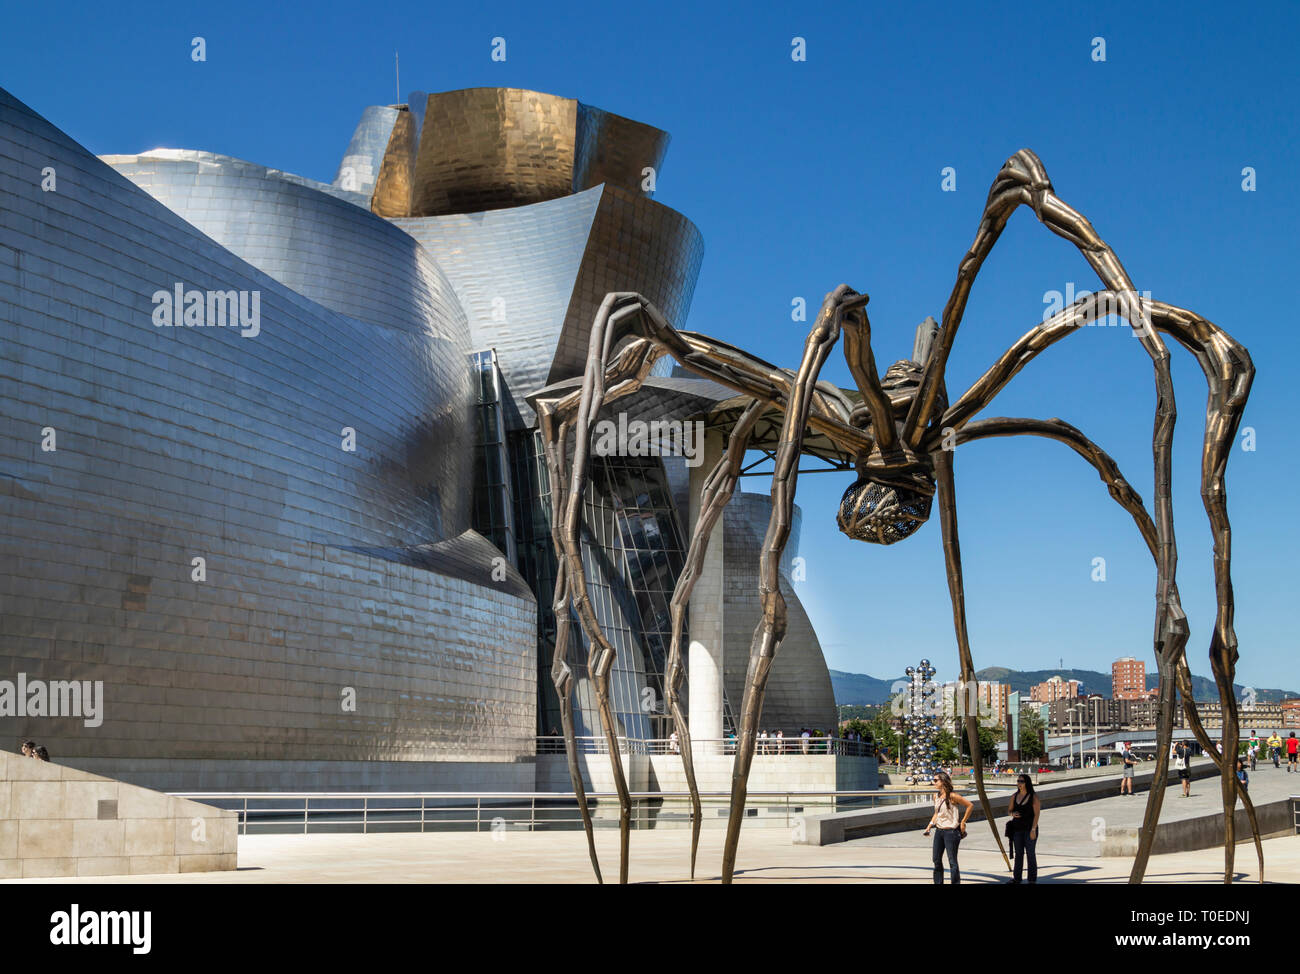 Spider sculpture 'Maman' by Louise Bourgeois outside Guggenheim museum in Bilbao, Spain. Stock Photo